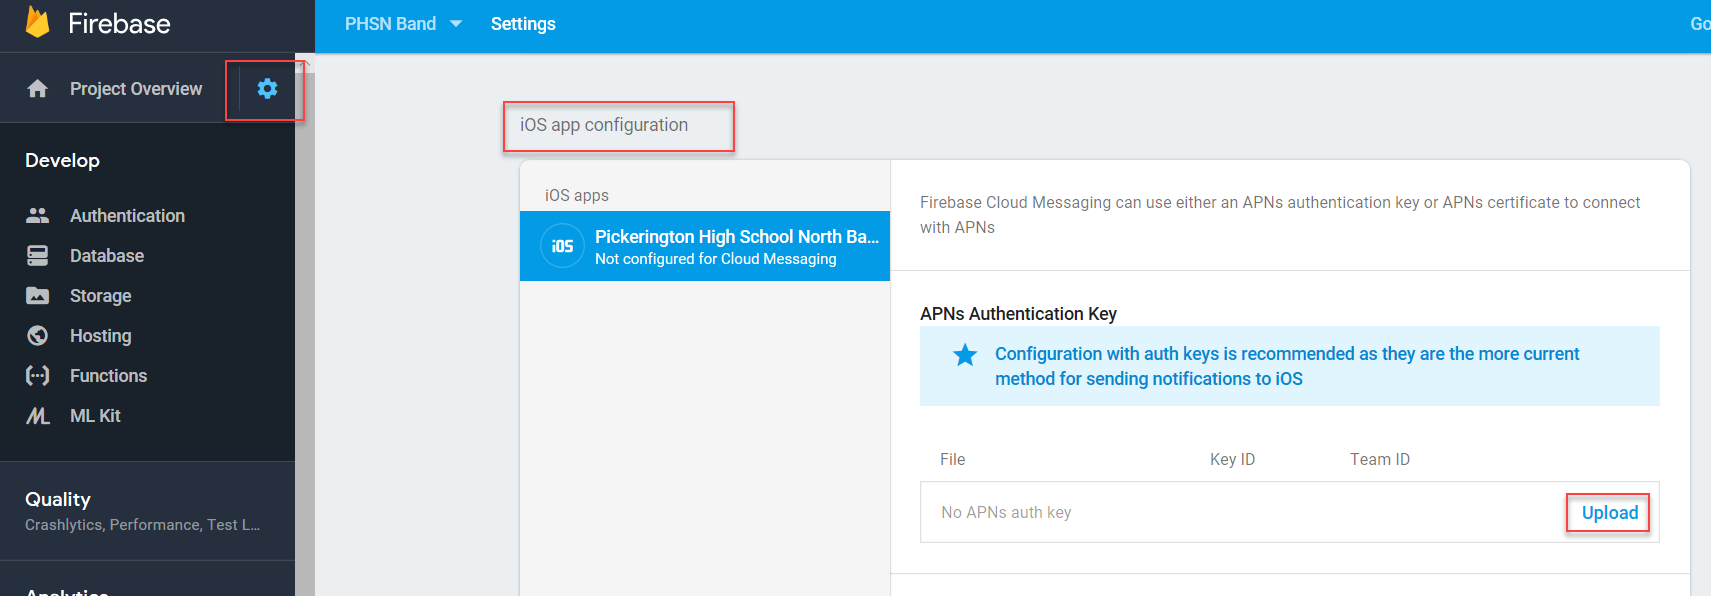 APNs Authentication Key Configuration